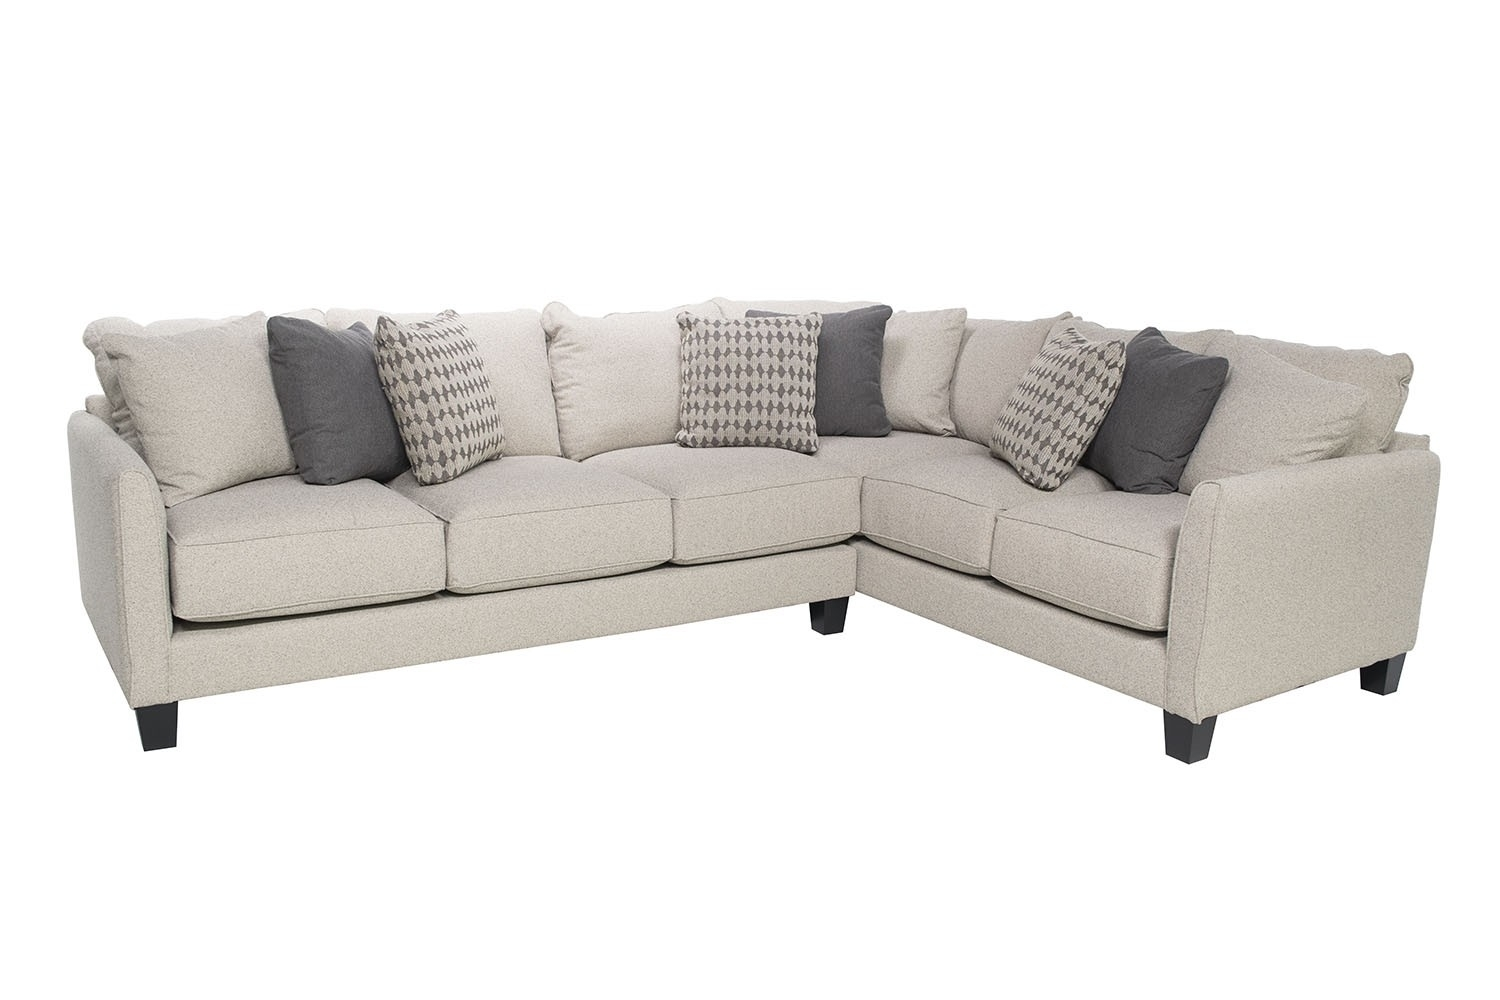 Sectional Sofas | Save Mor Online And In Store With Regard To Marcus Chocolate 6 Piece Sectionals With Power Headrest And Usb (Image 22 of 25)